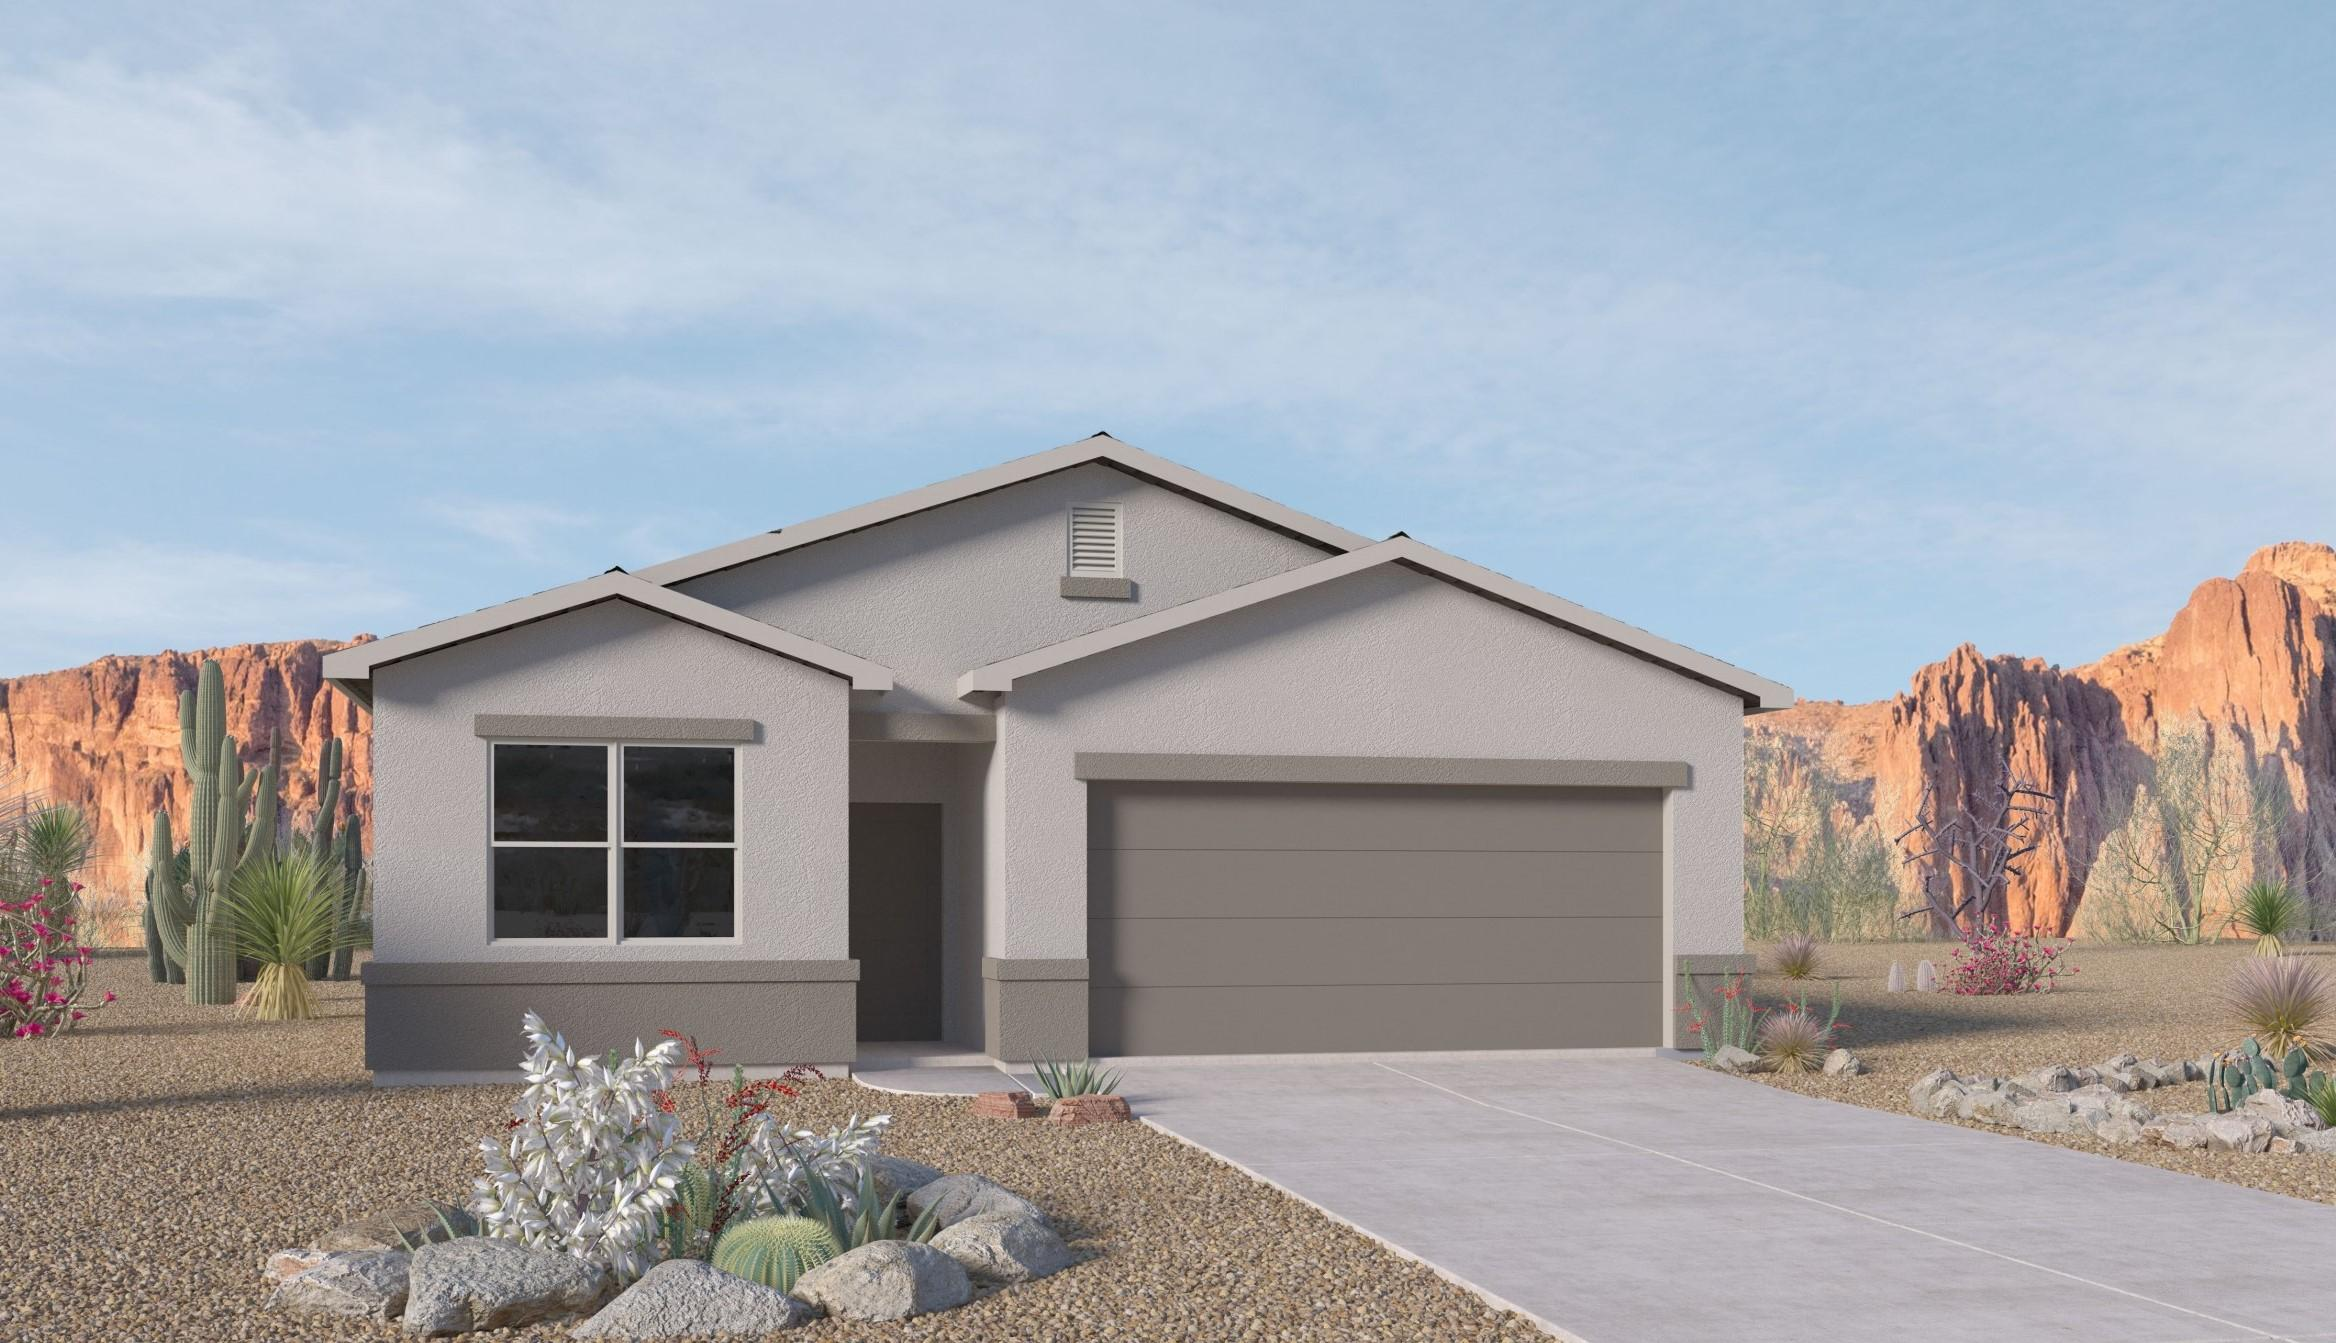 This brand new  ''SMART'' home is under construction and should be completed and ready for your family to enjoy in November.  Granite counter tops give a lovely touch to the Dark Wood Cabinets that really show off the Whirlpool appliances.  18 x 18 floor tile in Kitchen, baths and spacious laundry room. 9 ft ceilings & Blinds throughout home. Recessed lighting, breakfast bar and Yes, all brand NEW.  The ''CHAMA'' is an open floor plan with 4 bedrooms.  The dining & family room looks out over the covered patio to the back yard with an open space behind.   Solcito is close to swimming pool, library, soccer fields, equestrian,  ice skating rink, schools, shopping and restaurants.  Ask about free builder upgrades and paid closing costs. (Photos are of previous model home)